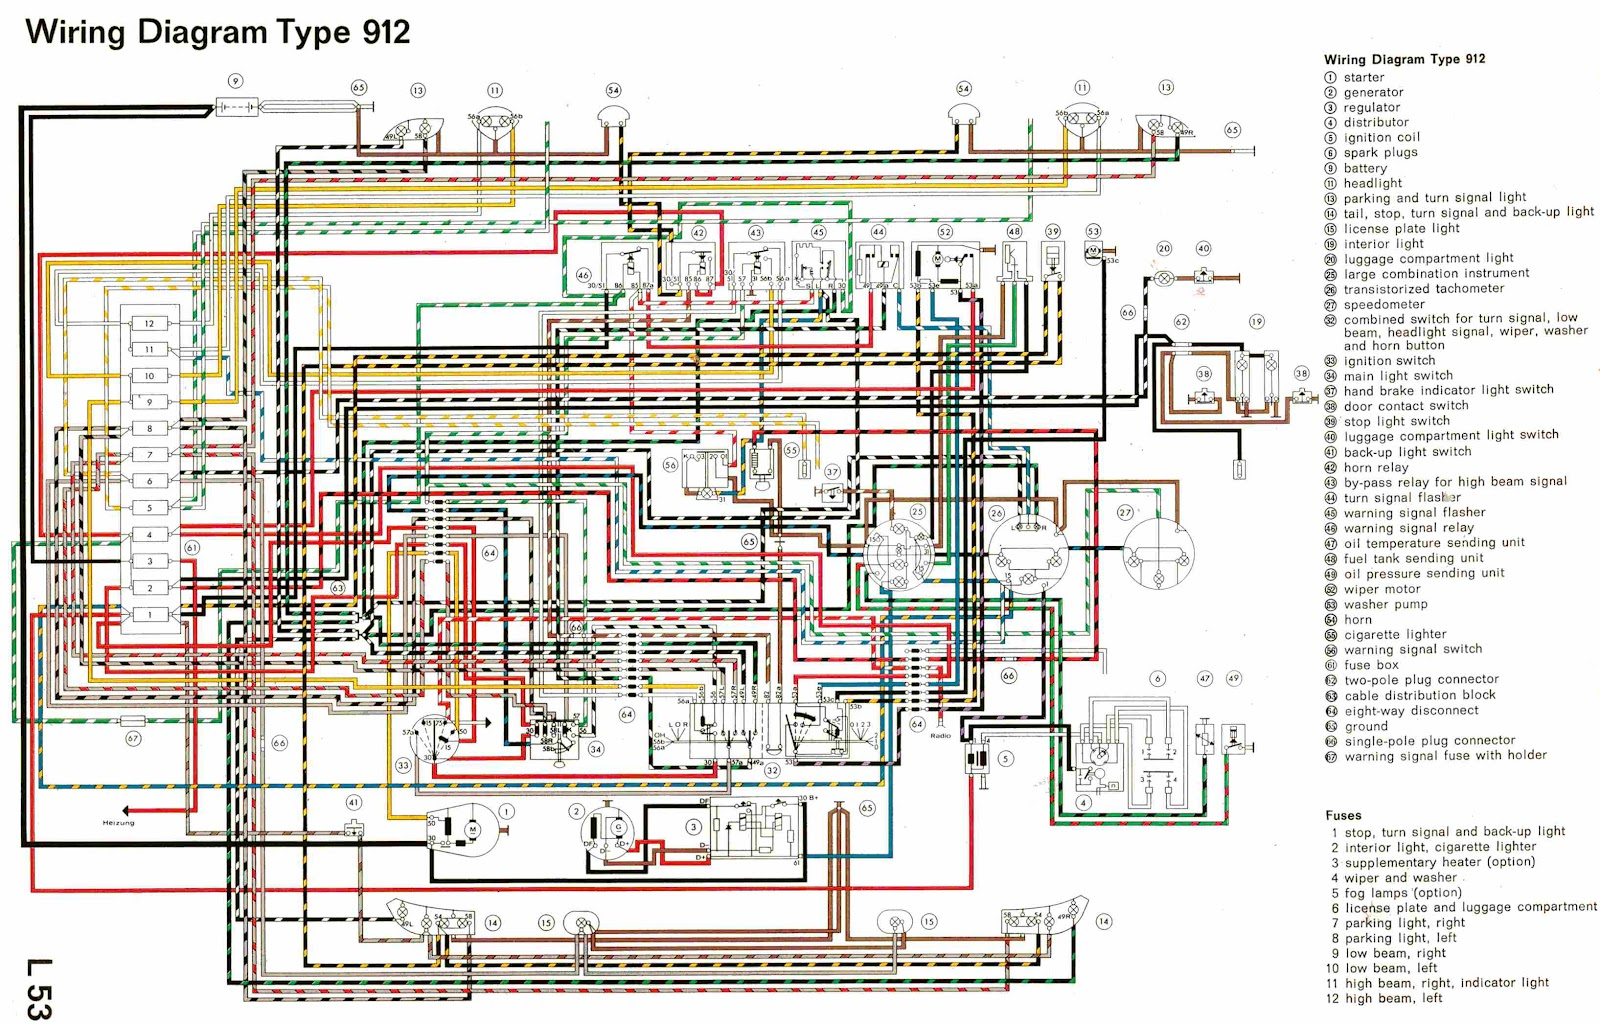 Porsche+Type+912+Complete+Electrical+Wiring+Diagram diagrams 19091109 rotax 912 wiring diagram aeroelectric rotax 912 wiring schematic at honlapkeszites.co